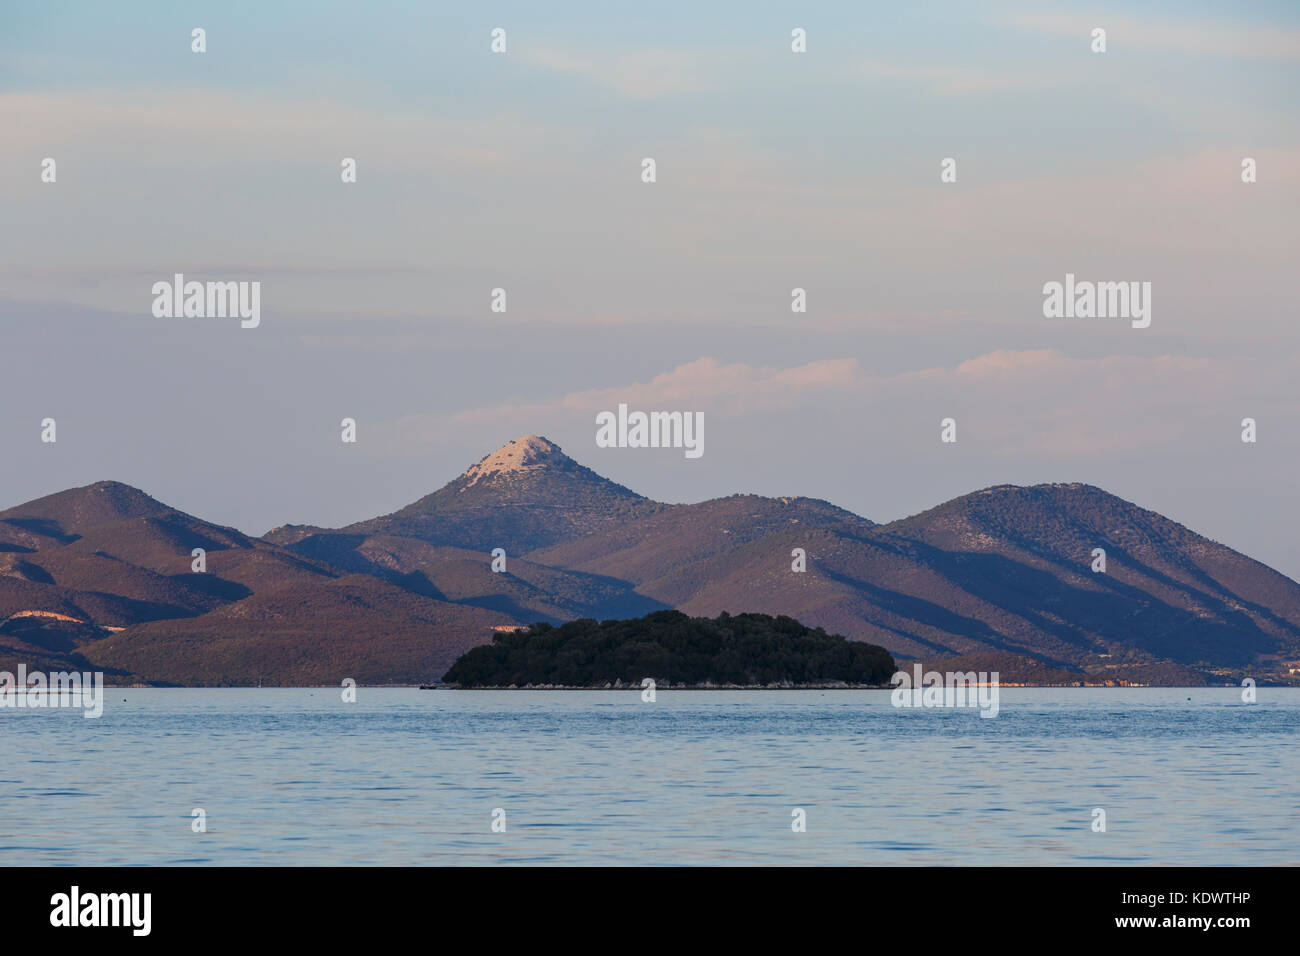 Nature of the mainland Greece as seen from Lefkada island in Greece. - Stock Image